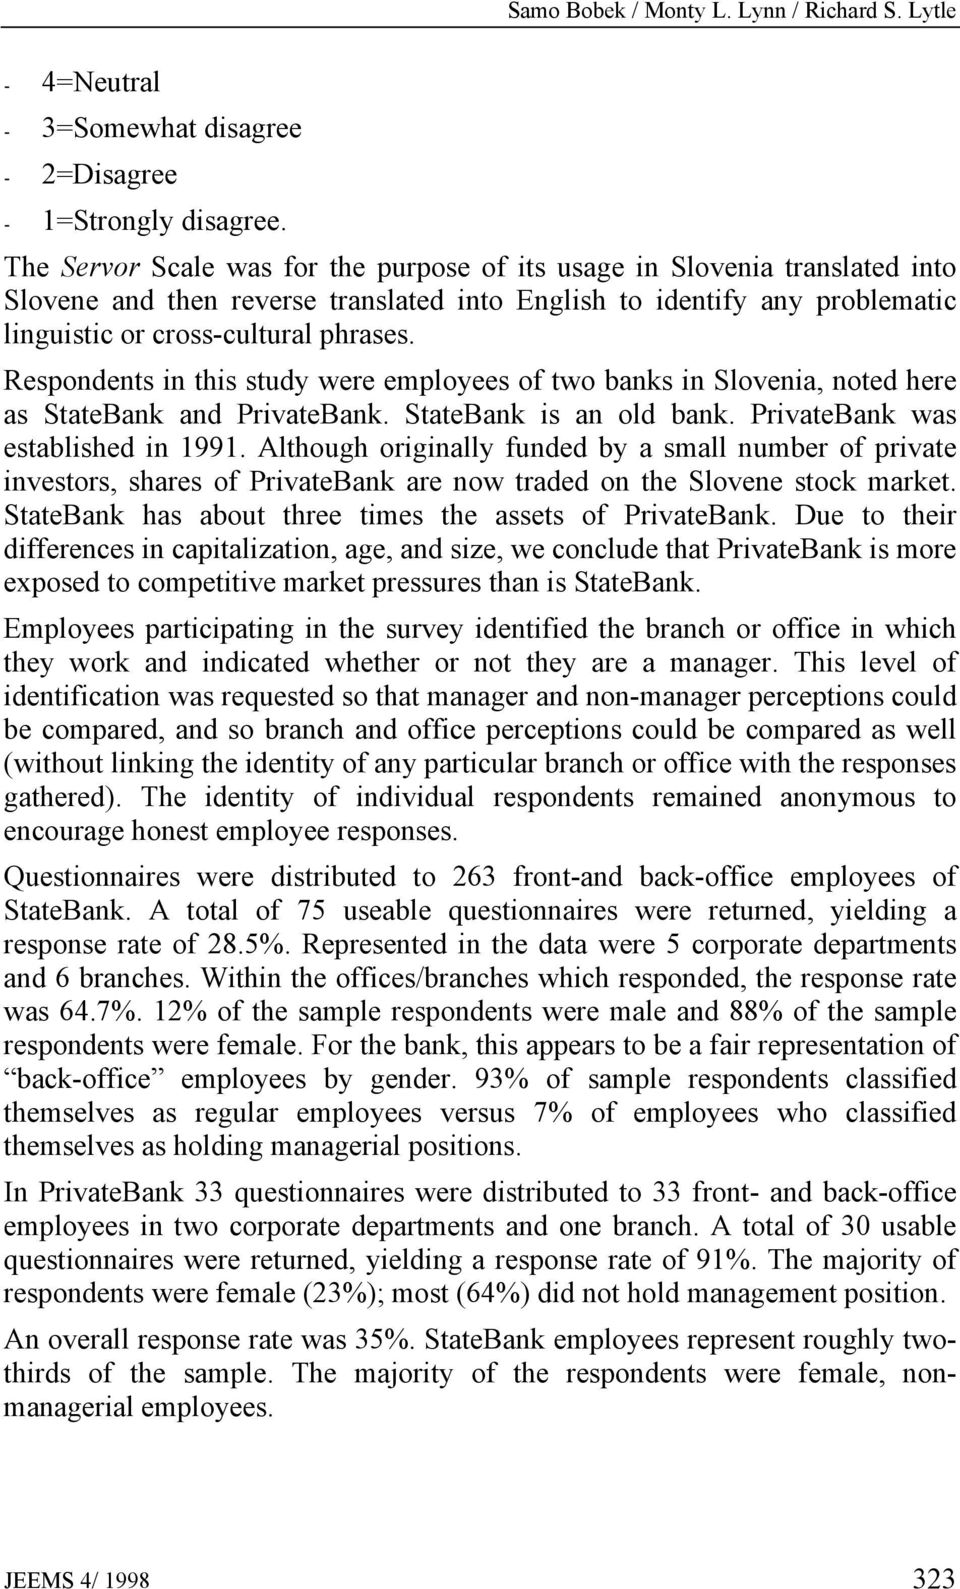 Respondents in this study were employees of two banks in Slovenia, noted here as StateBank and PrivateBank. StateBank is an old bank. PrivateBank was established in 1991.